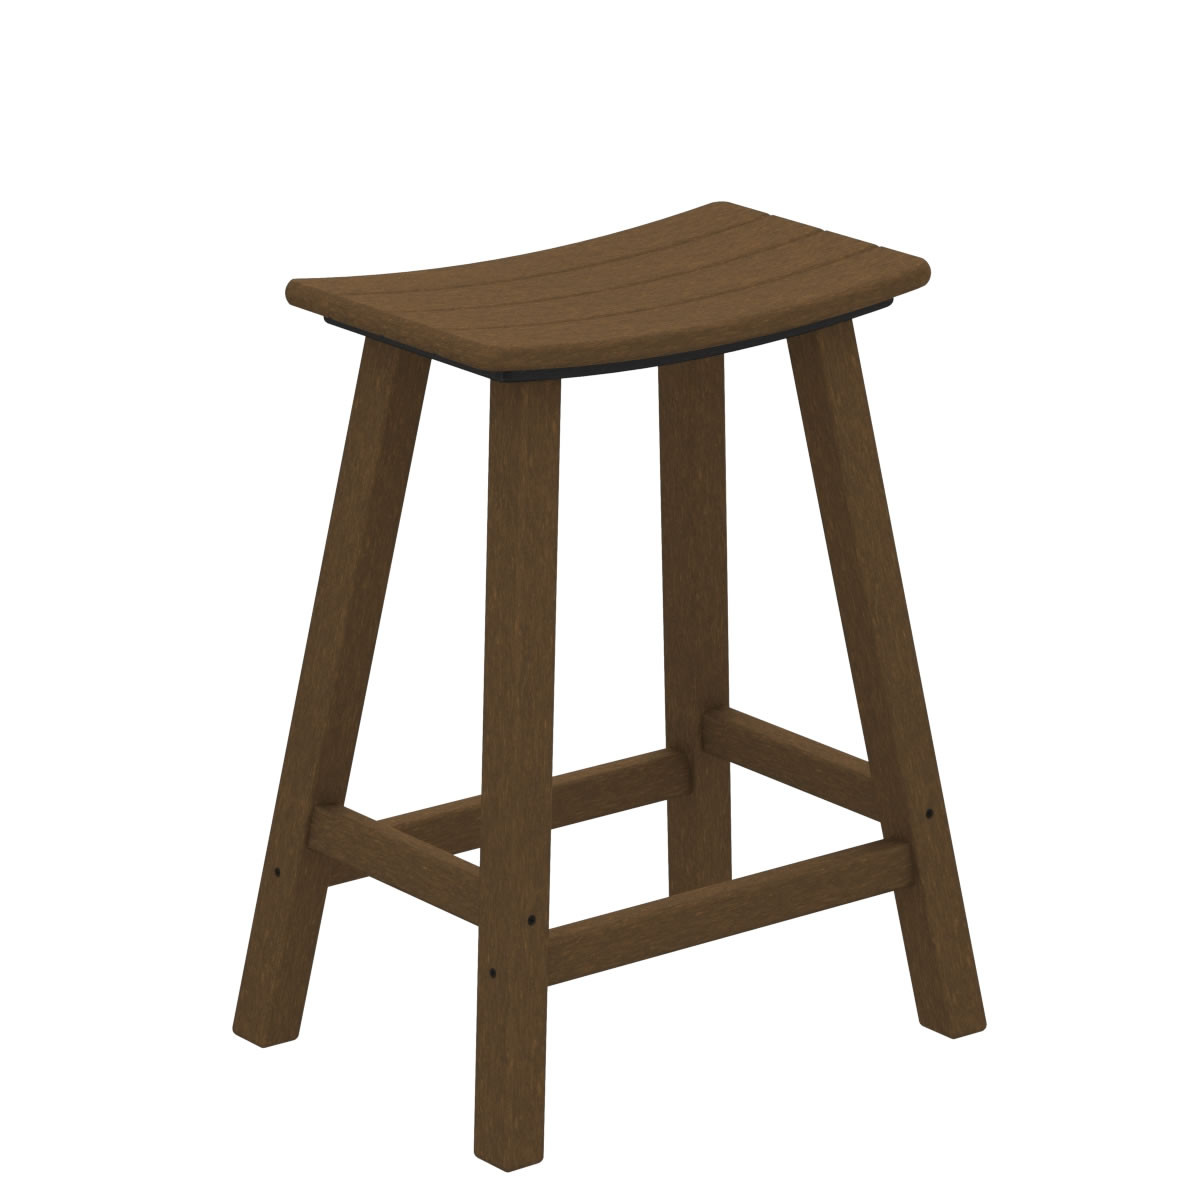 POLYWOOD Traditional 24 In Saddle Bar Stool Traditional Garden POLYWOOD Outdoor Furniture